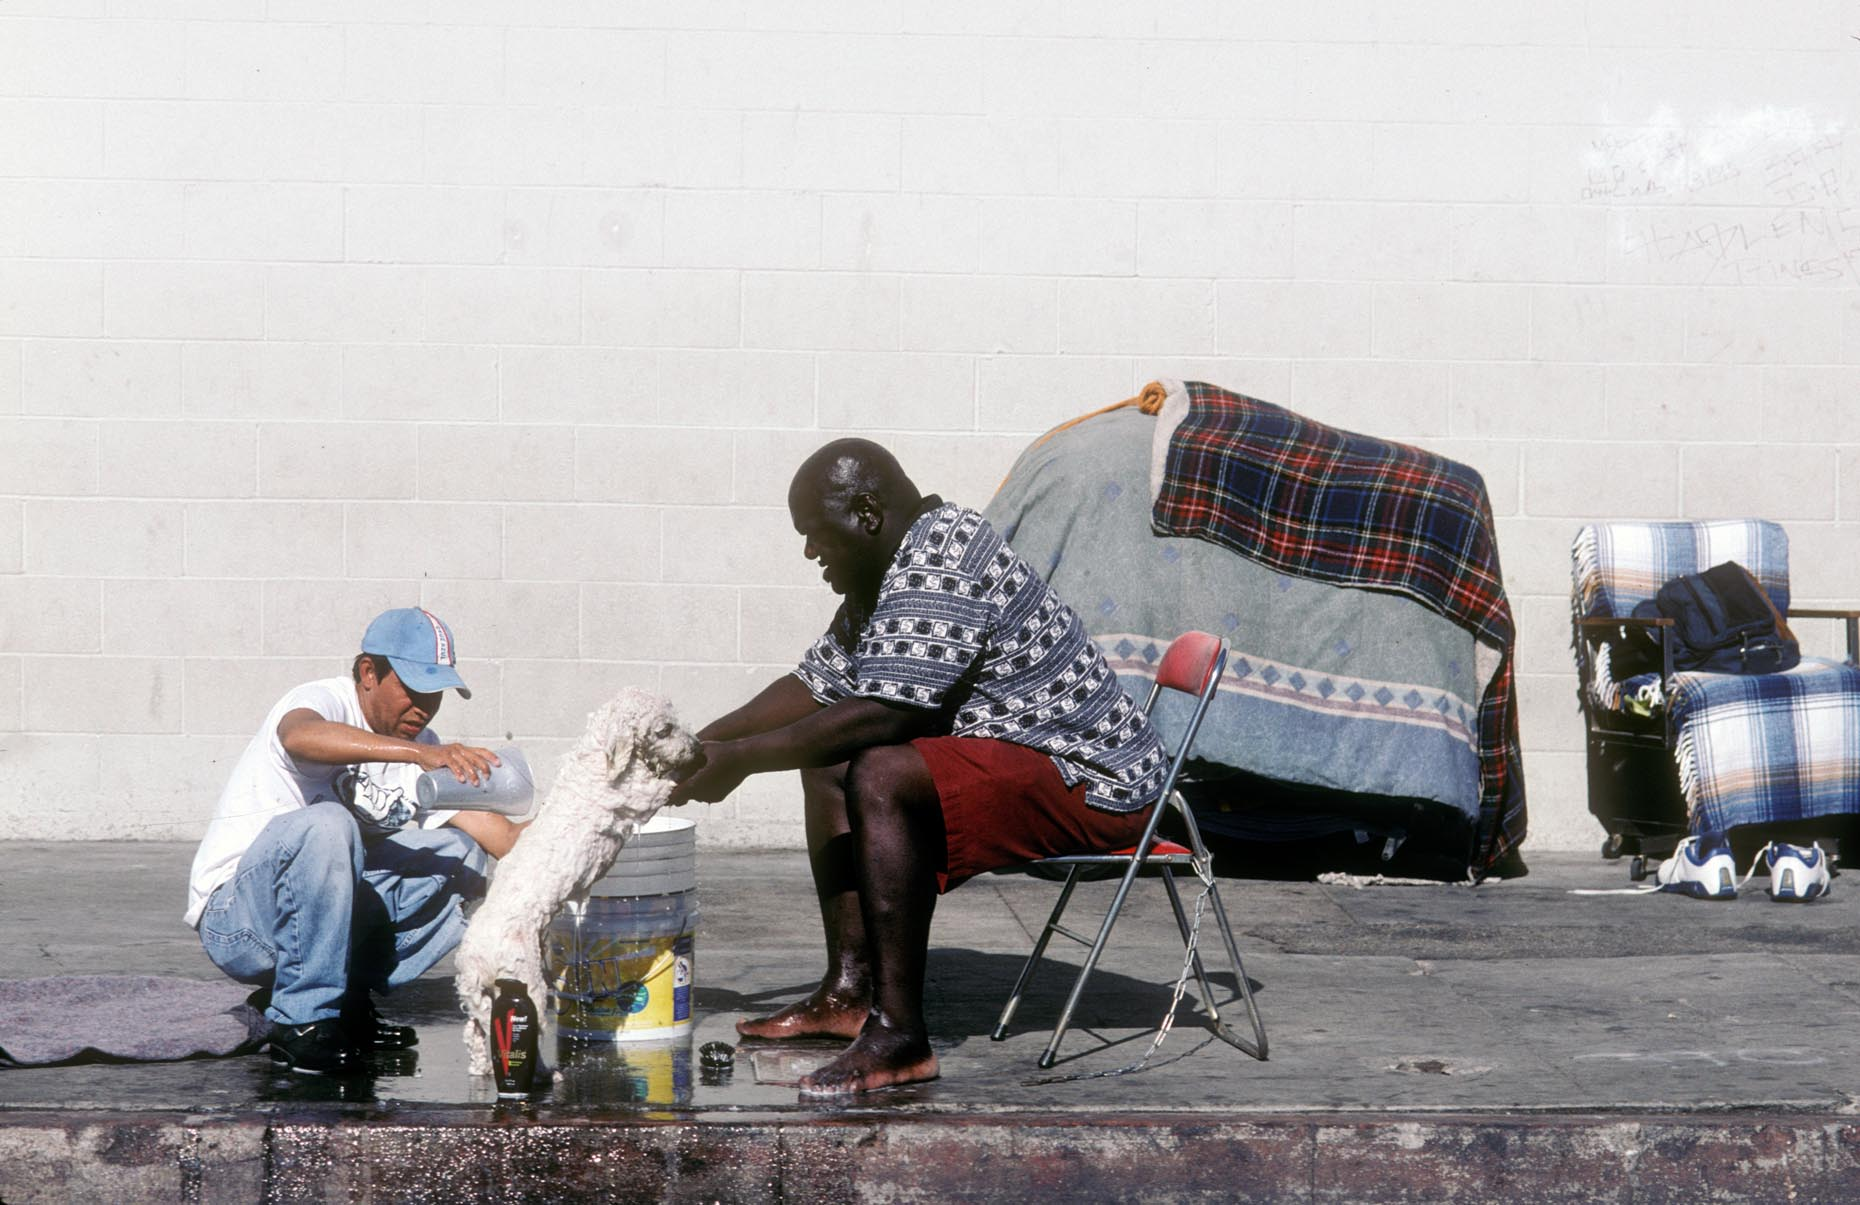 13_Towne Ave-DUP2. between 6th and 7th, Skid Row, LA, 2007.jpg